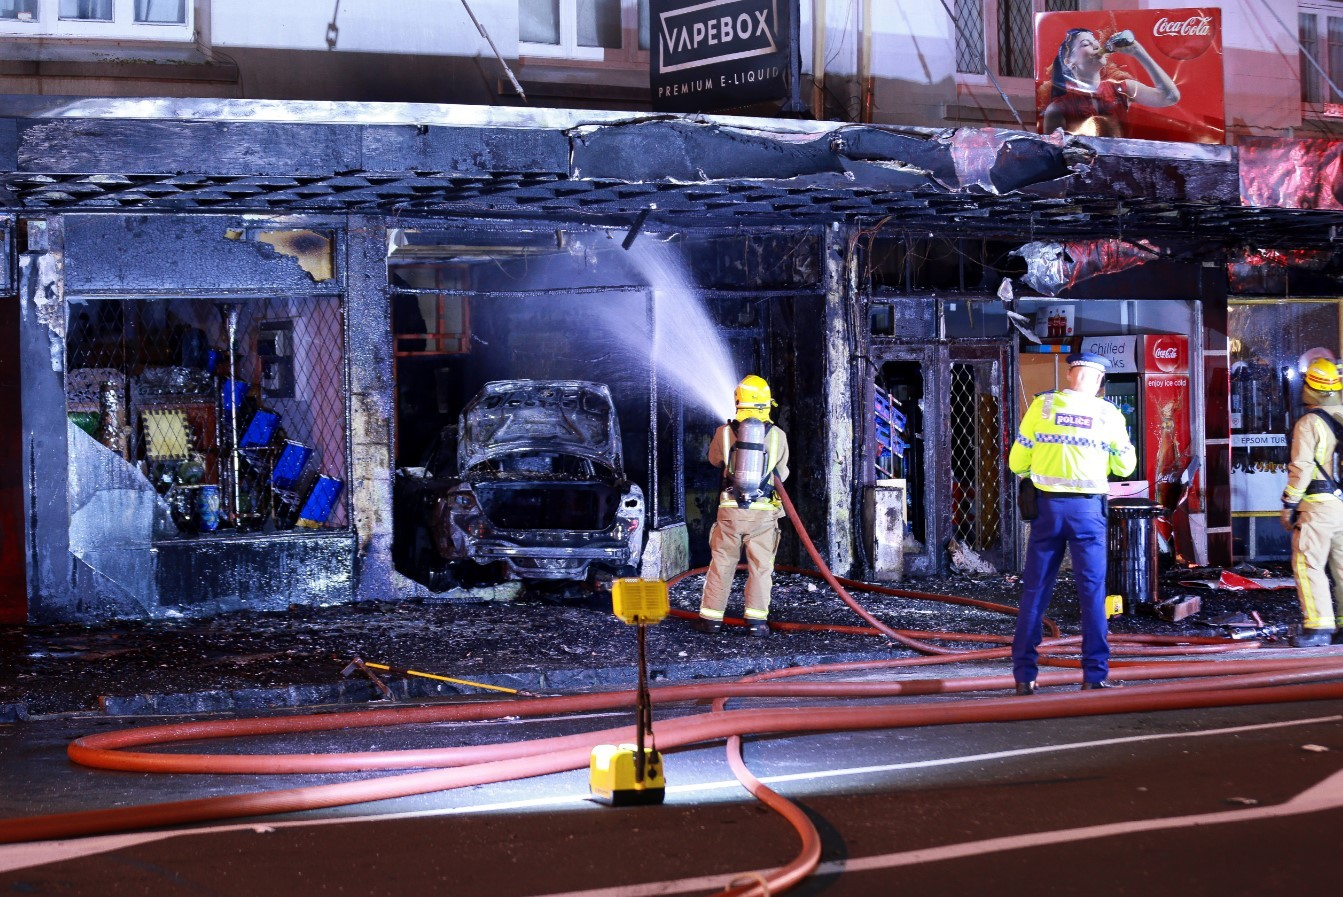 Car crashes into shop, burns it down - fire crews say it wasn't an accident